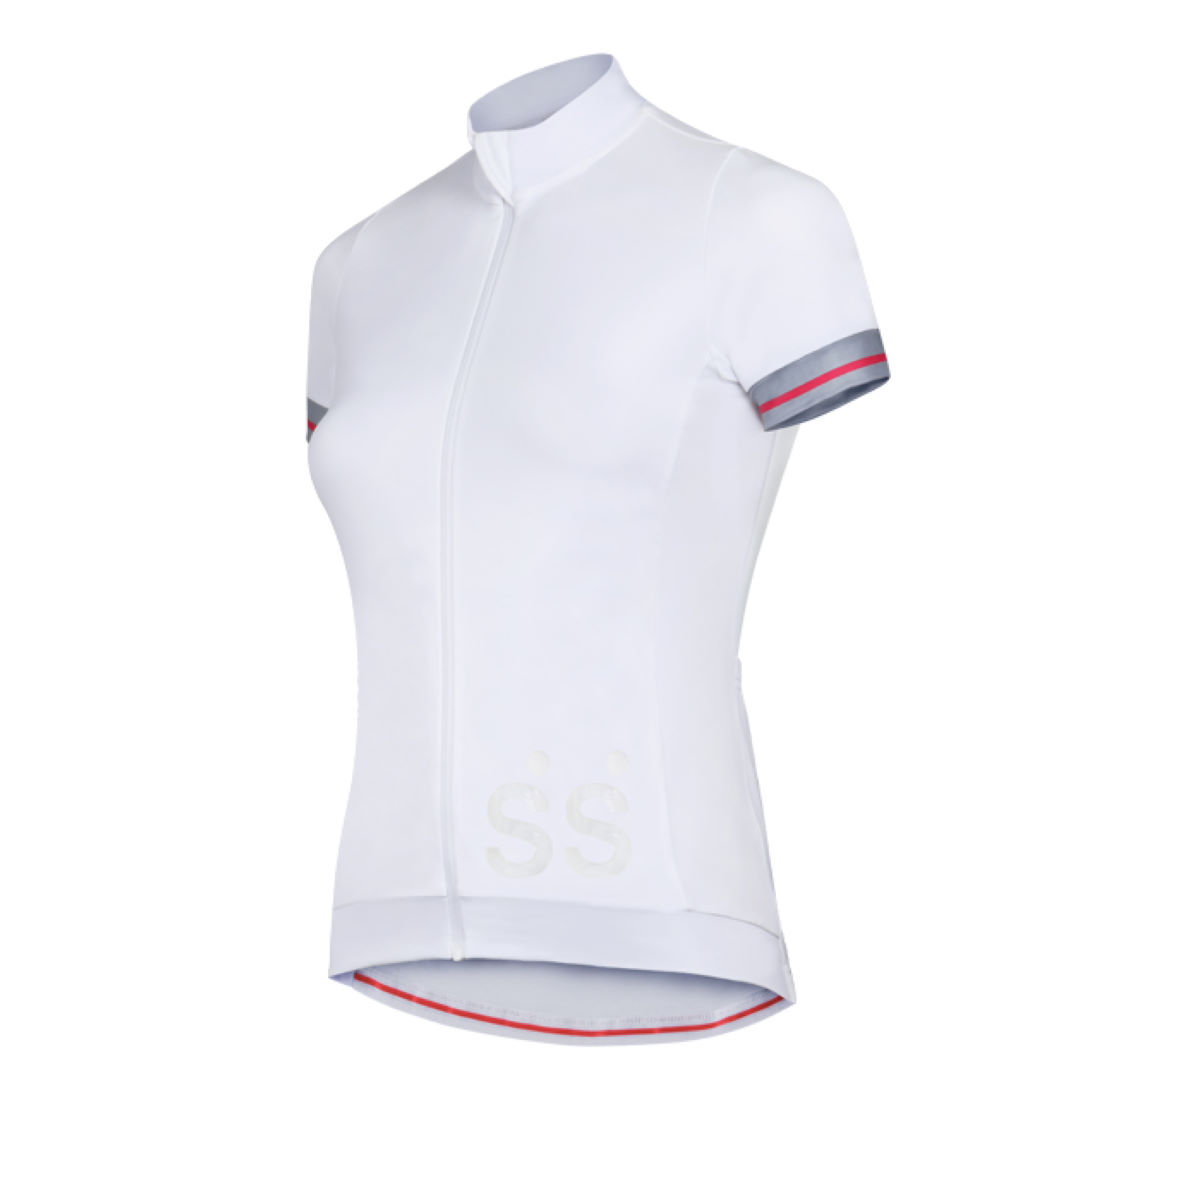 Maillot Femme LaClassica Pro Team - S Blanc Maillots